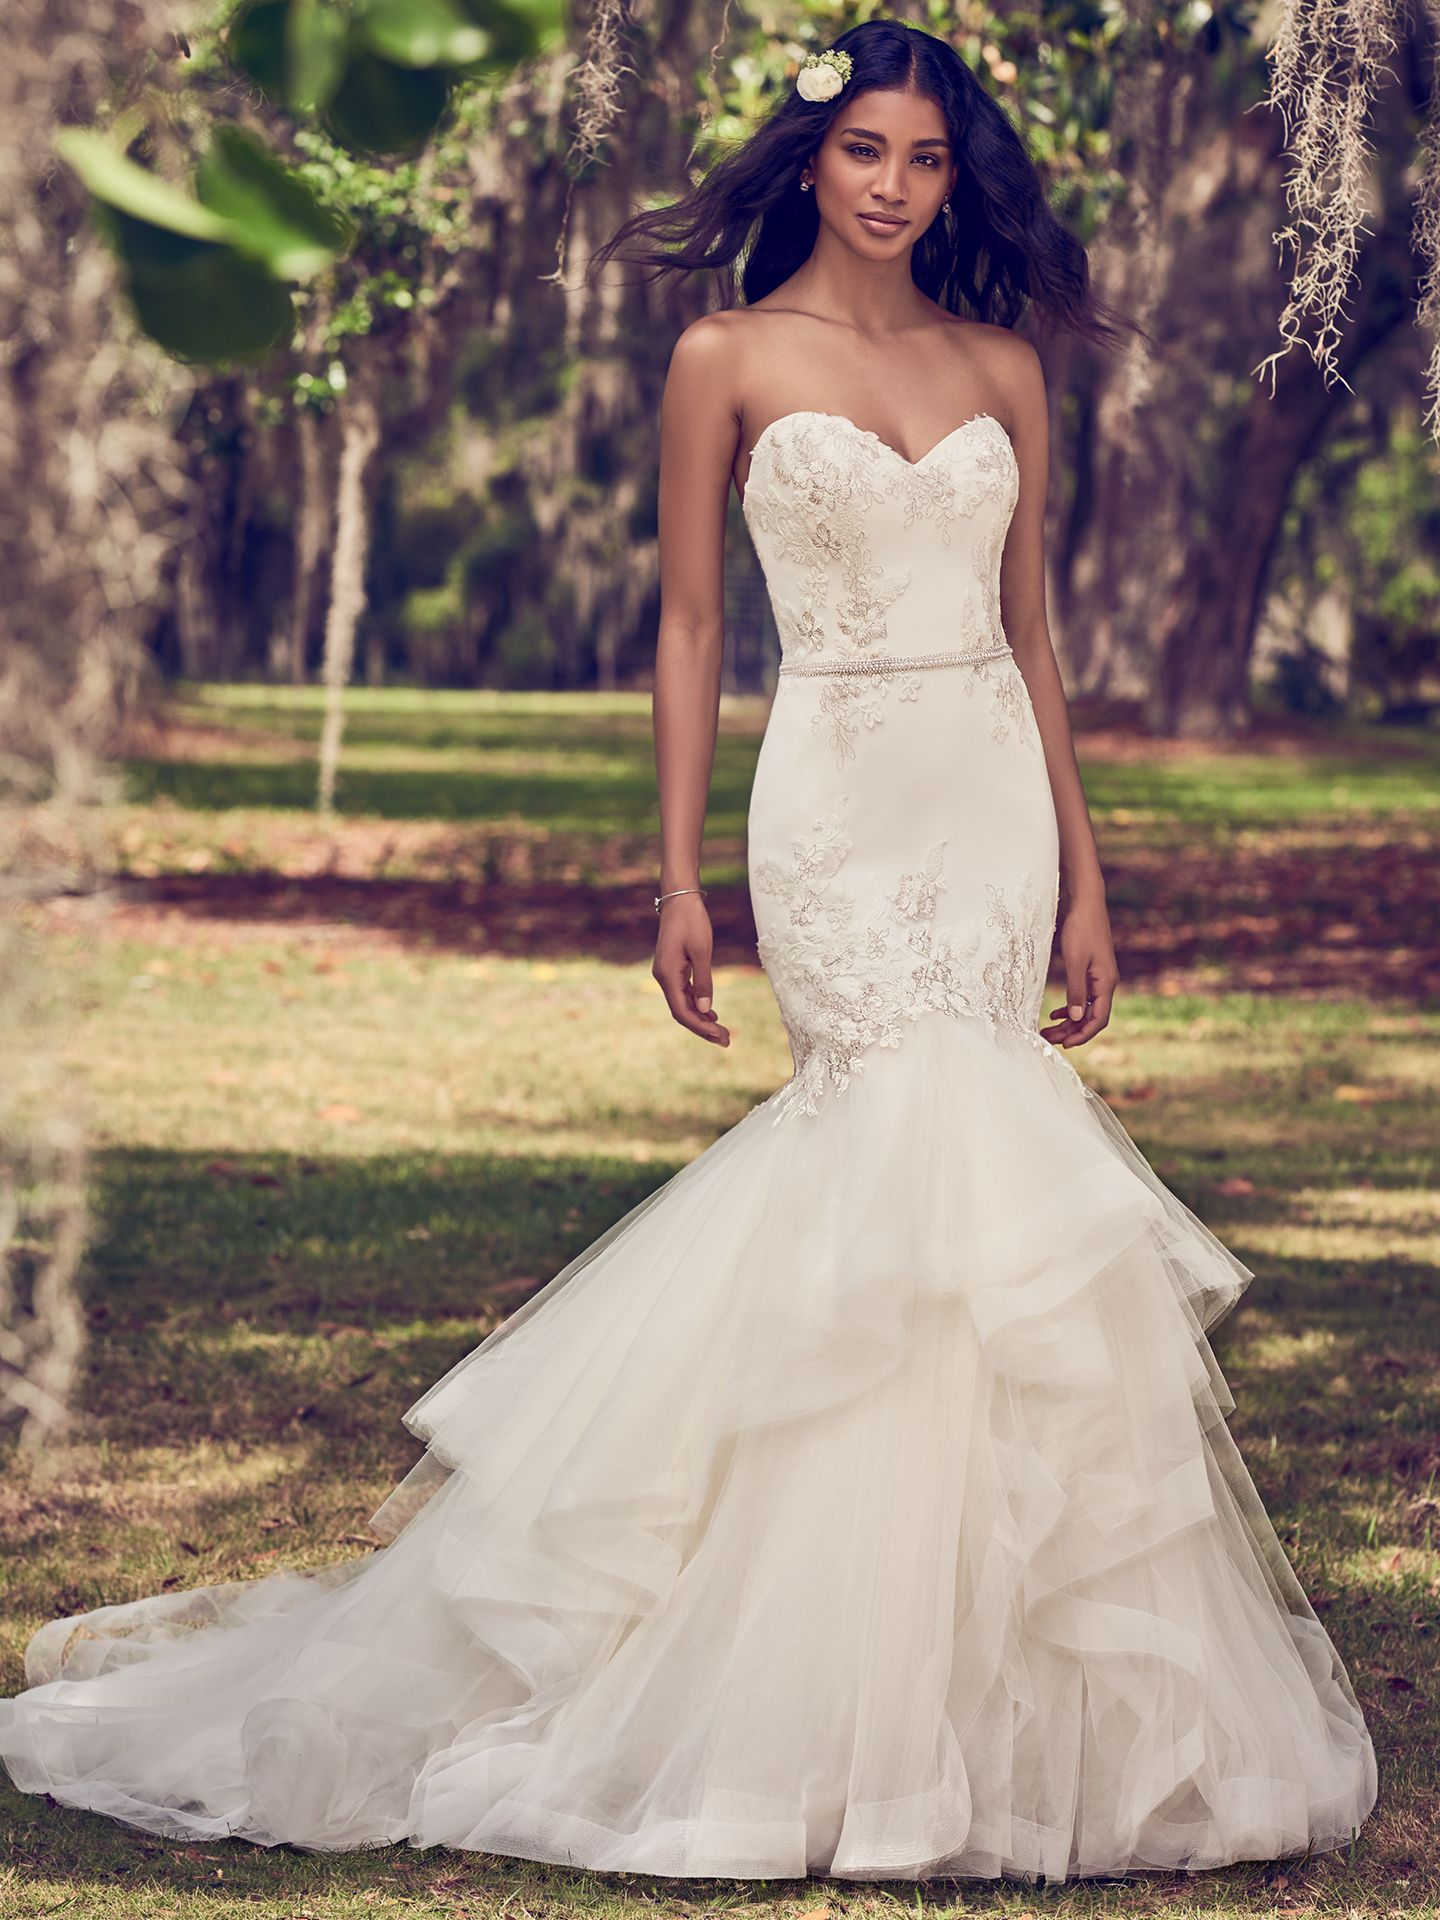 This mermaid wedding dress features a tulle bodice accented in embroidered lace motifs atop a tiered tulle fit-and-flare skirt edged in horsehair. Complete with strapless sweetheart neckline and bead and pearl embellished belt. Lined with shapewear for a figure-flattering fit. Available in Ivory with Pewter Accent. Dalinda by Maggie Sottero. Colorful Wedding Dresses For The Bold Bride